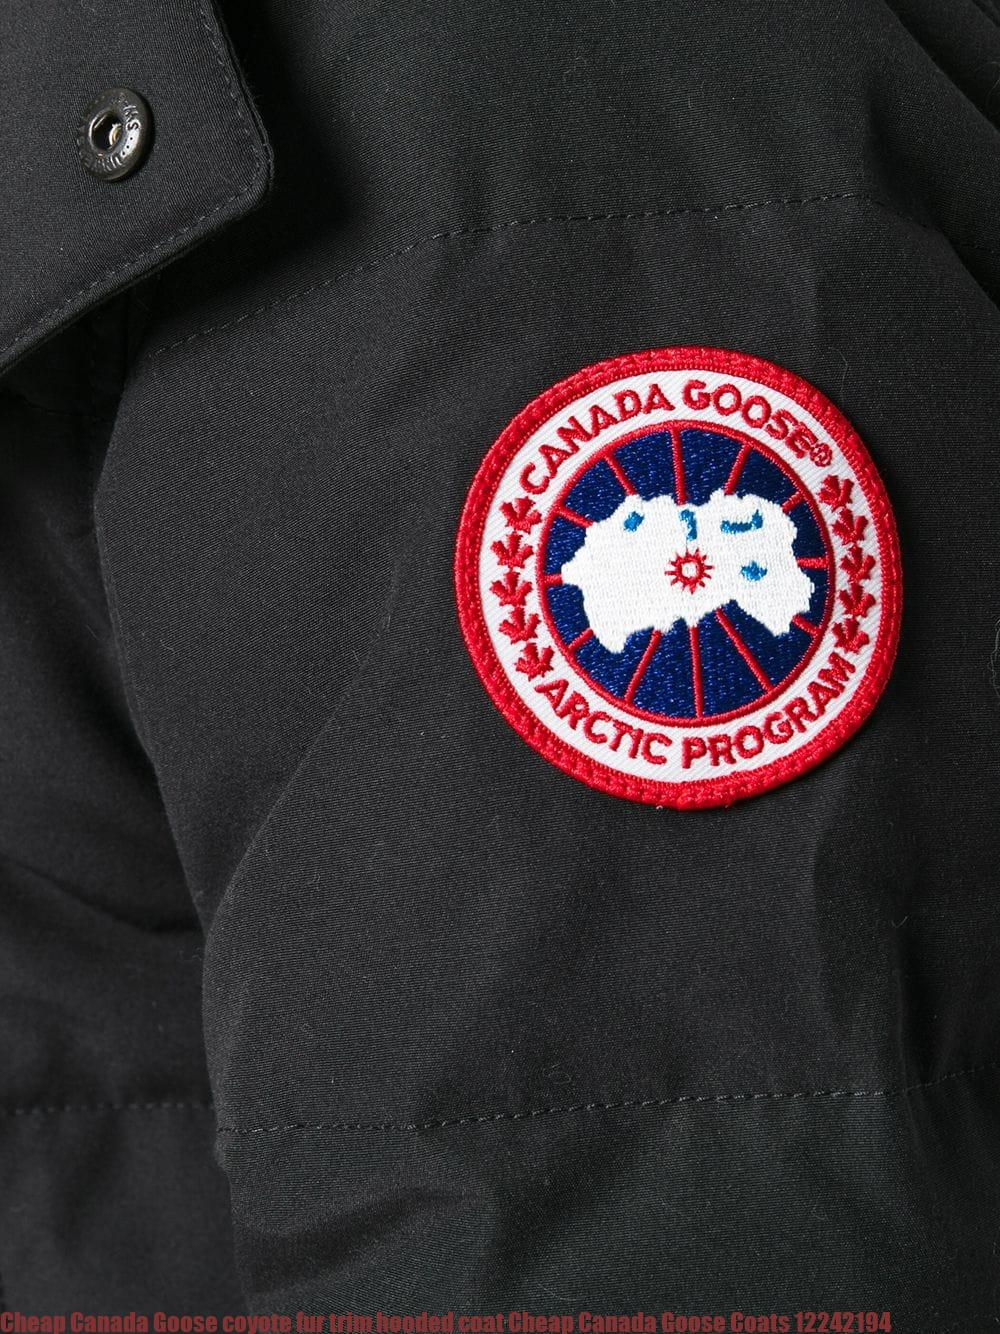 6315a0bf174 Cheap Canada Goose coyote fur trim hooded coat Cheap Canada Goose Coats  12242194